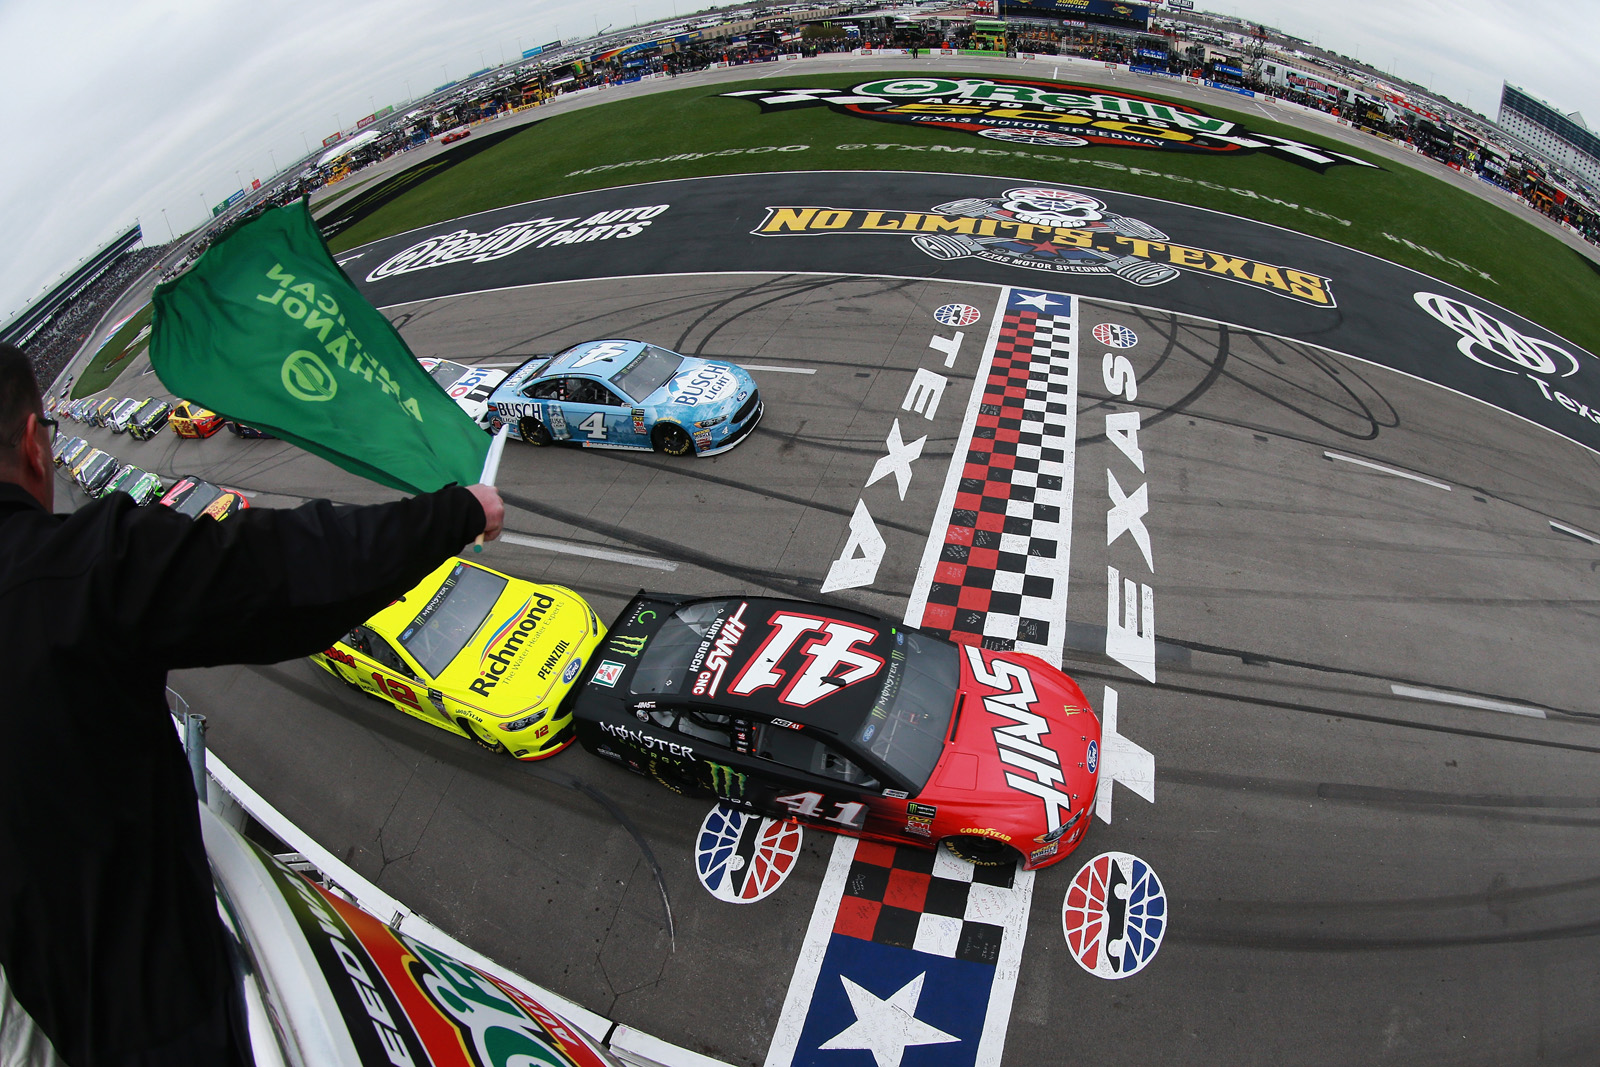 The nascar o reilly auto parts 500 at texas motor speedway for Starting lineup texas motor speedway